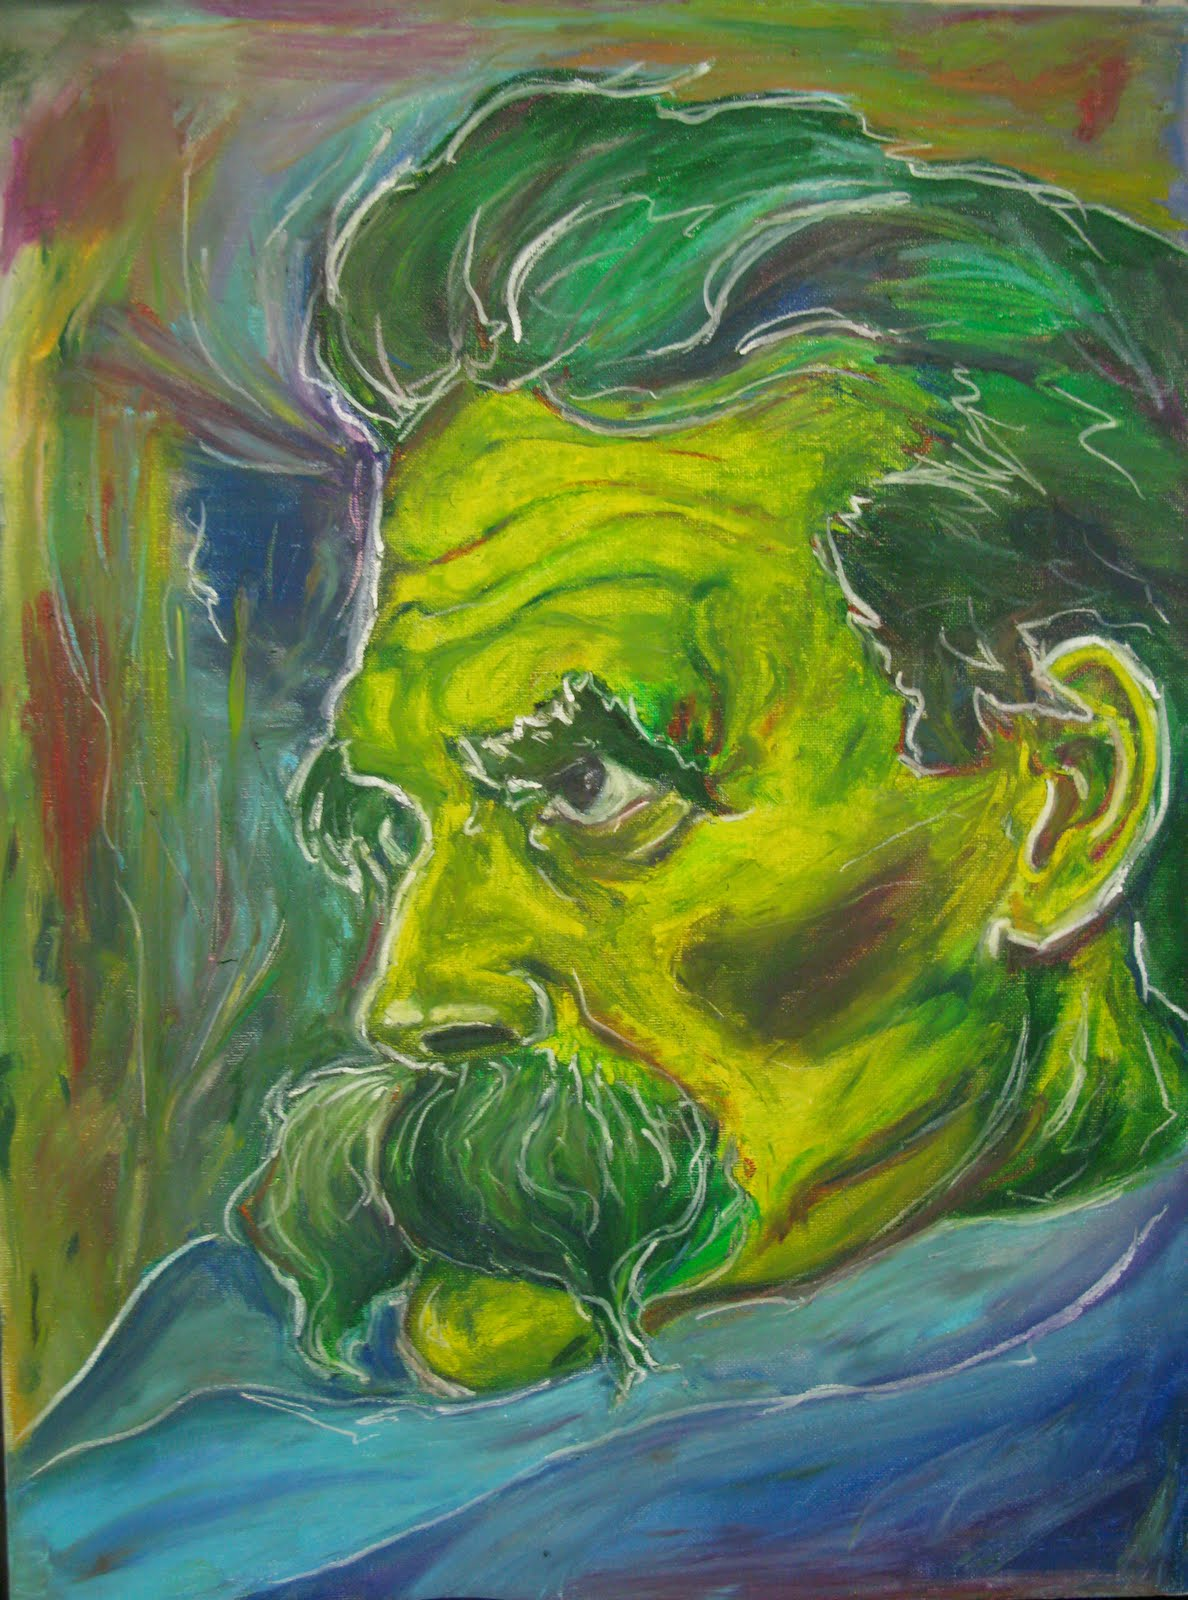 nietzsche's perspective There is only a perspective seeing, only a perspective knowing and the more affects we allow to speak about one thing, the more eyes, different eyes, we can use to observe one thing, the more complete will our concept of this thing, our objectivity, be.